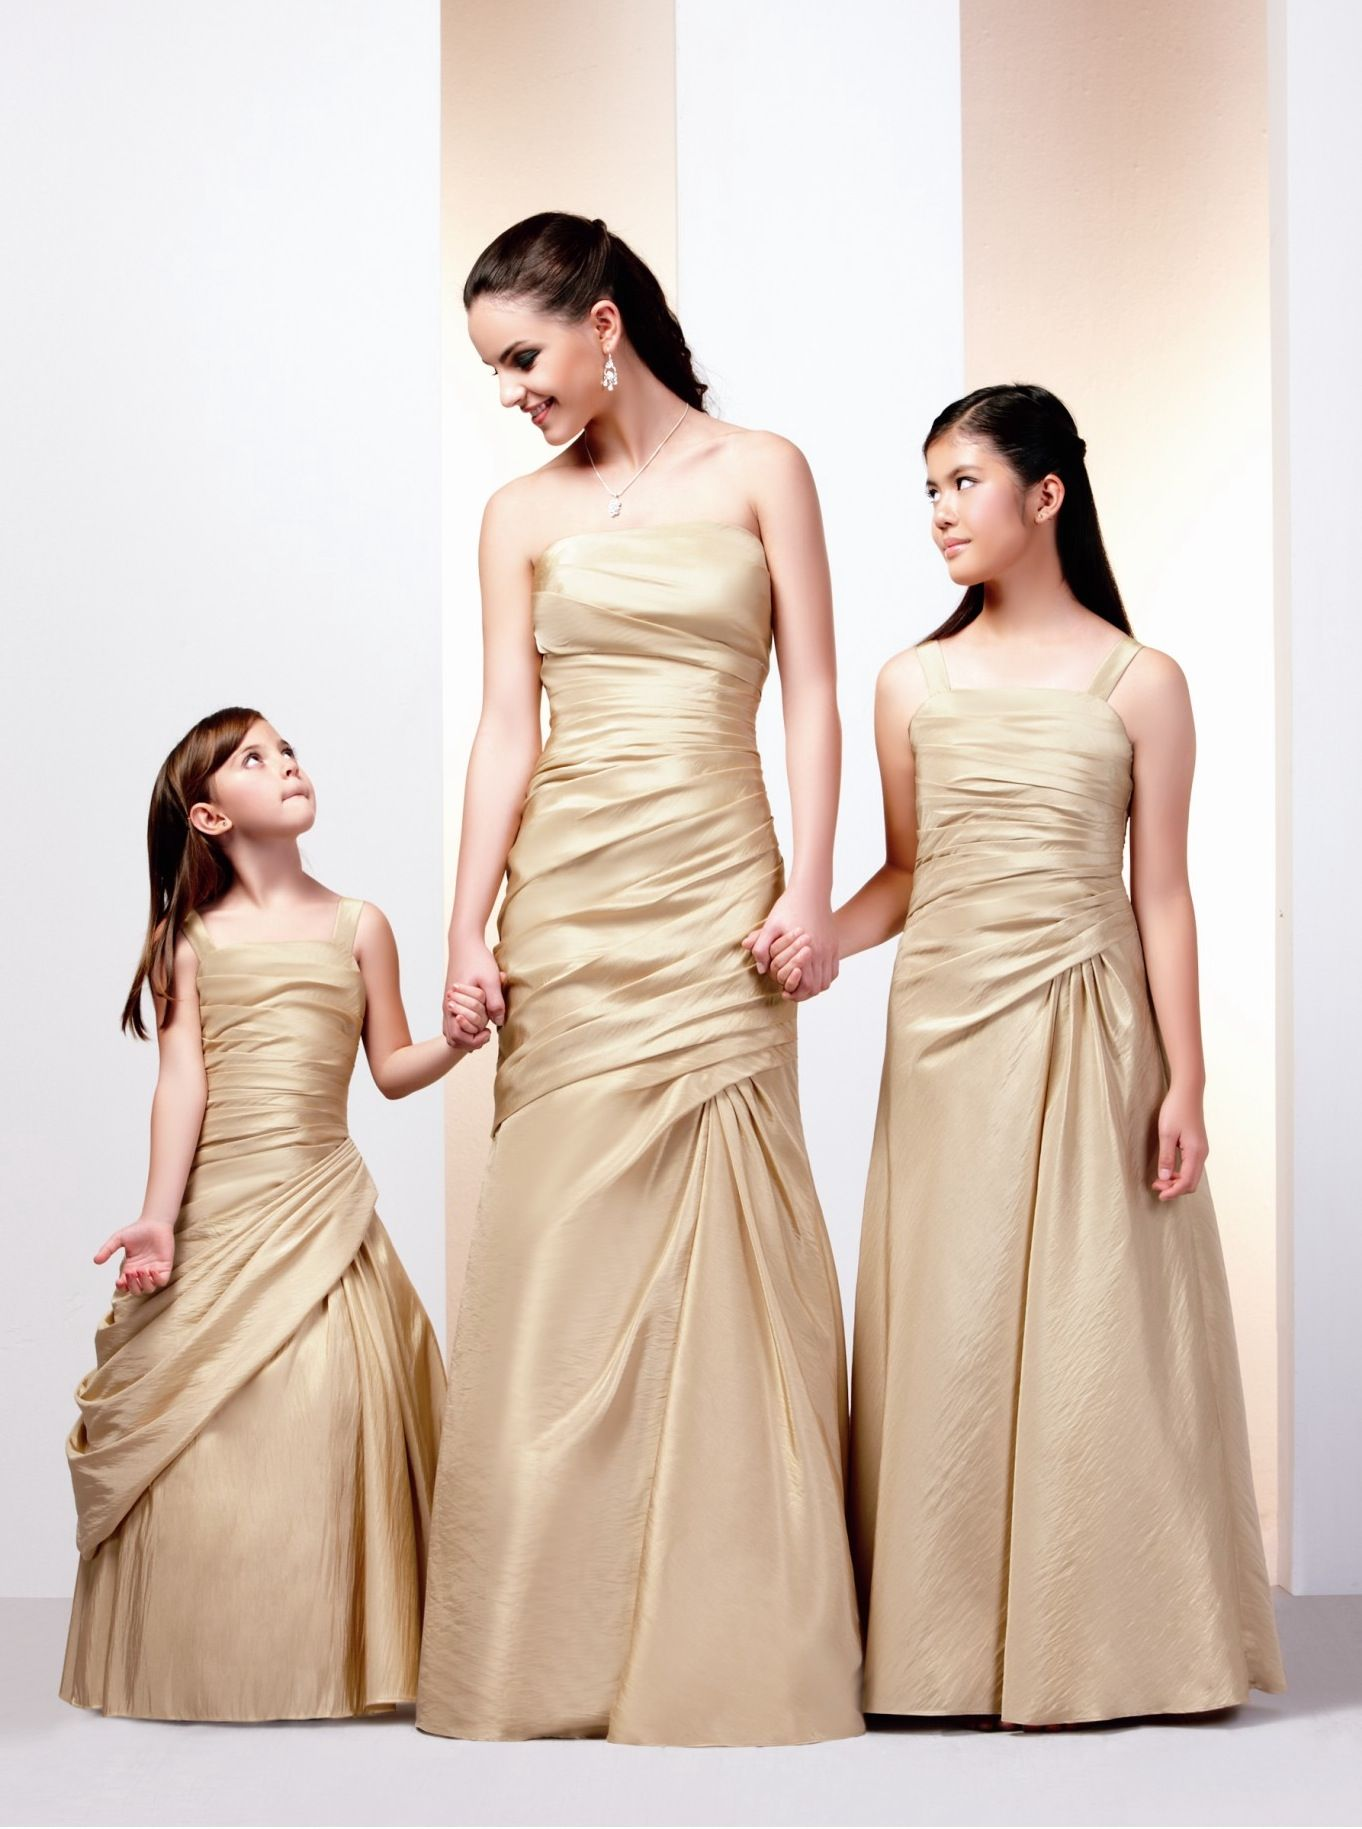 Gold bridesmaid dresses collection bridesmaids pinterest bridal parties gold bridesmaid dresses collection ombrellifo Gallery